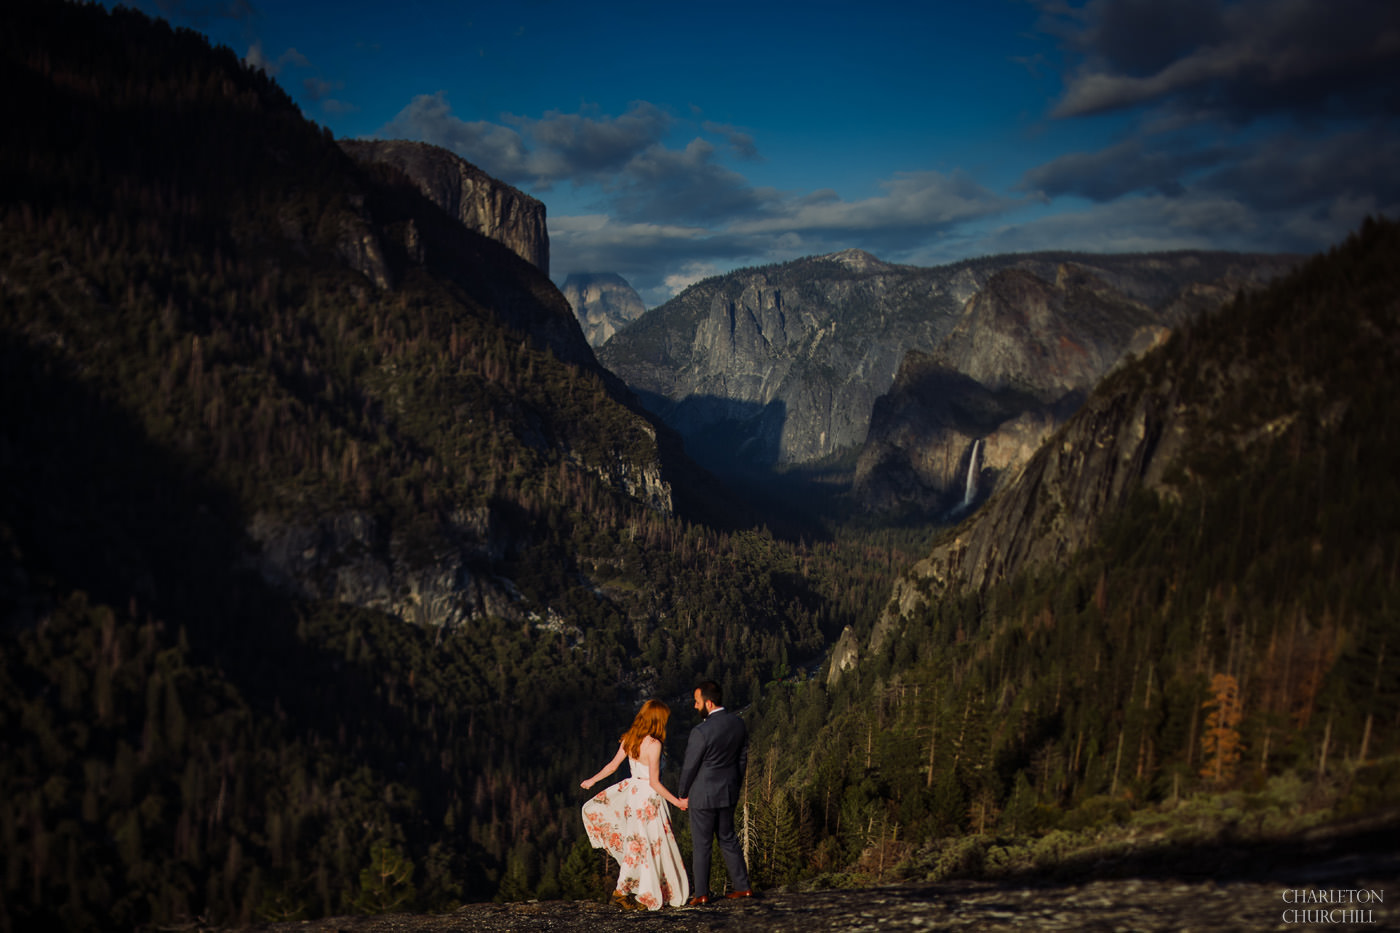 beautiful engagement photos in Yosemite for elopement or weddings with locations most tourists don